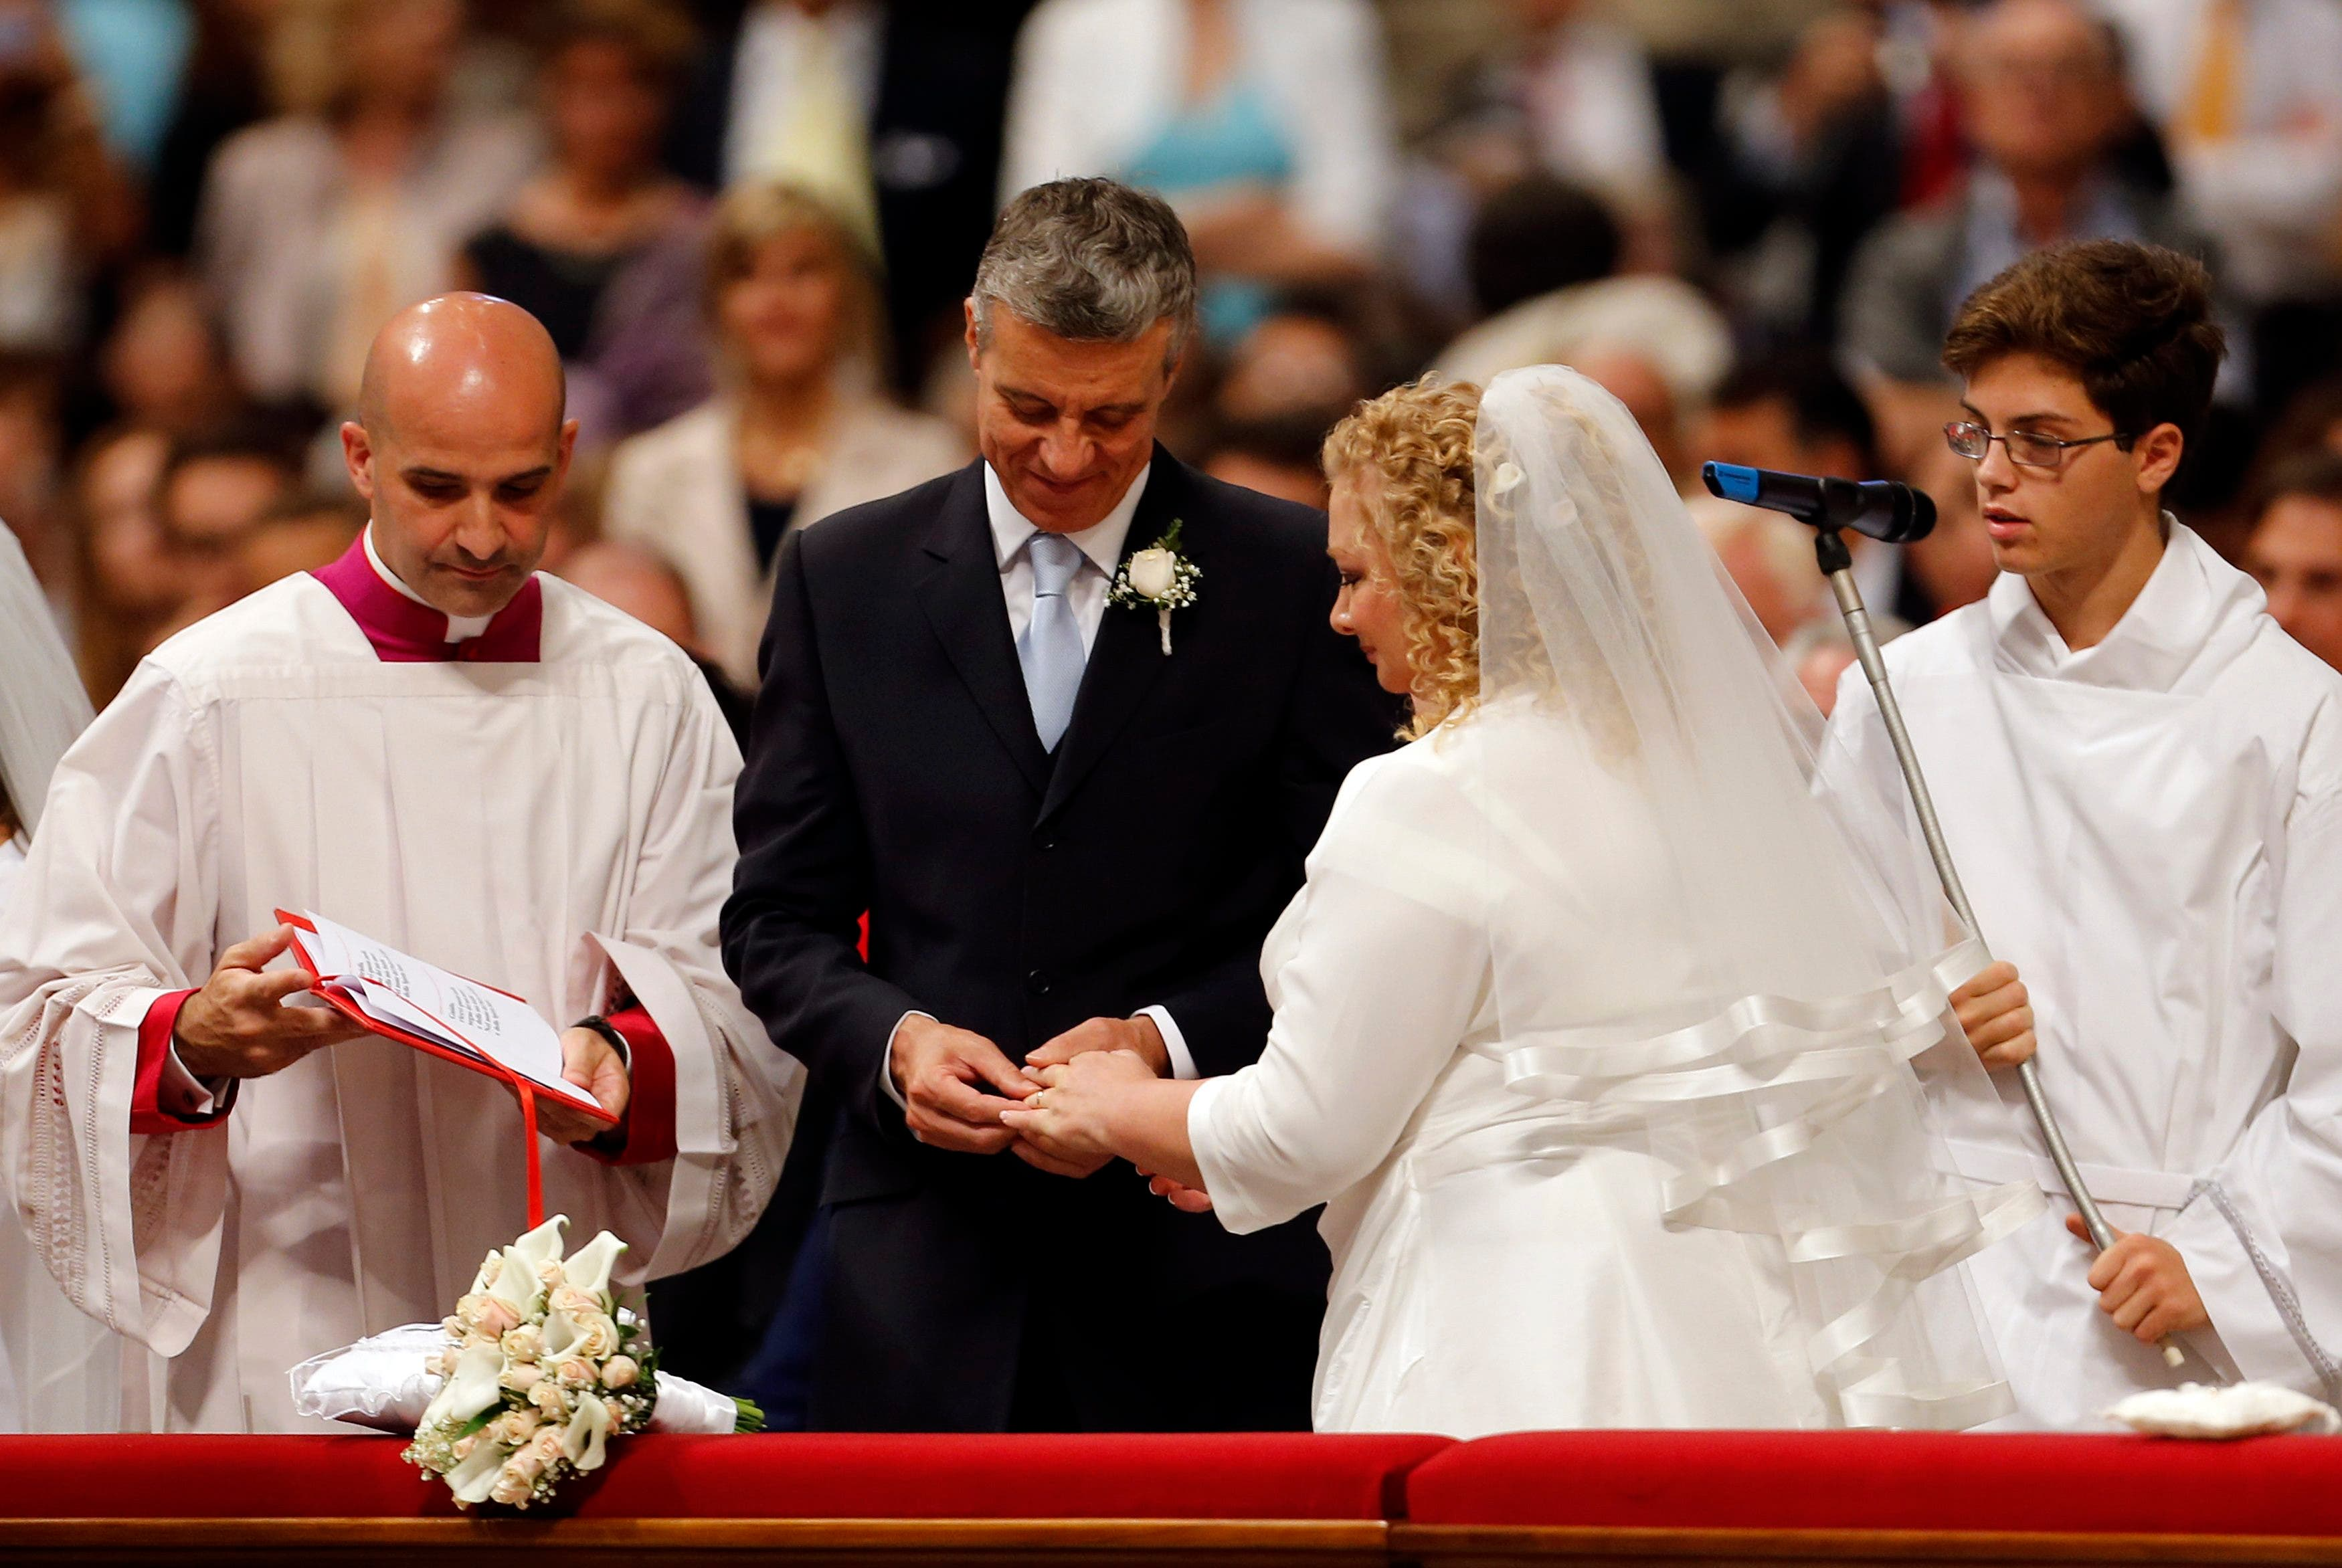 groom exchanges rings with his bride during their wedding mass officiated by Pope Francis in St.Peter's Basilica at the Vatican, September 14, 2014. (Reuters)